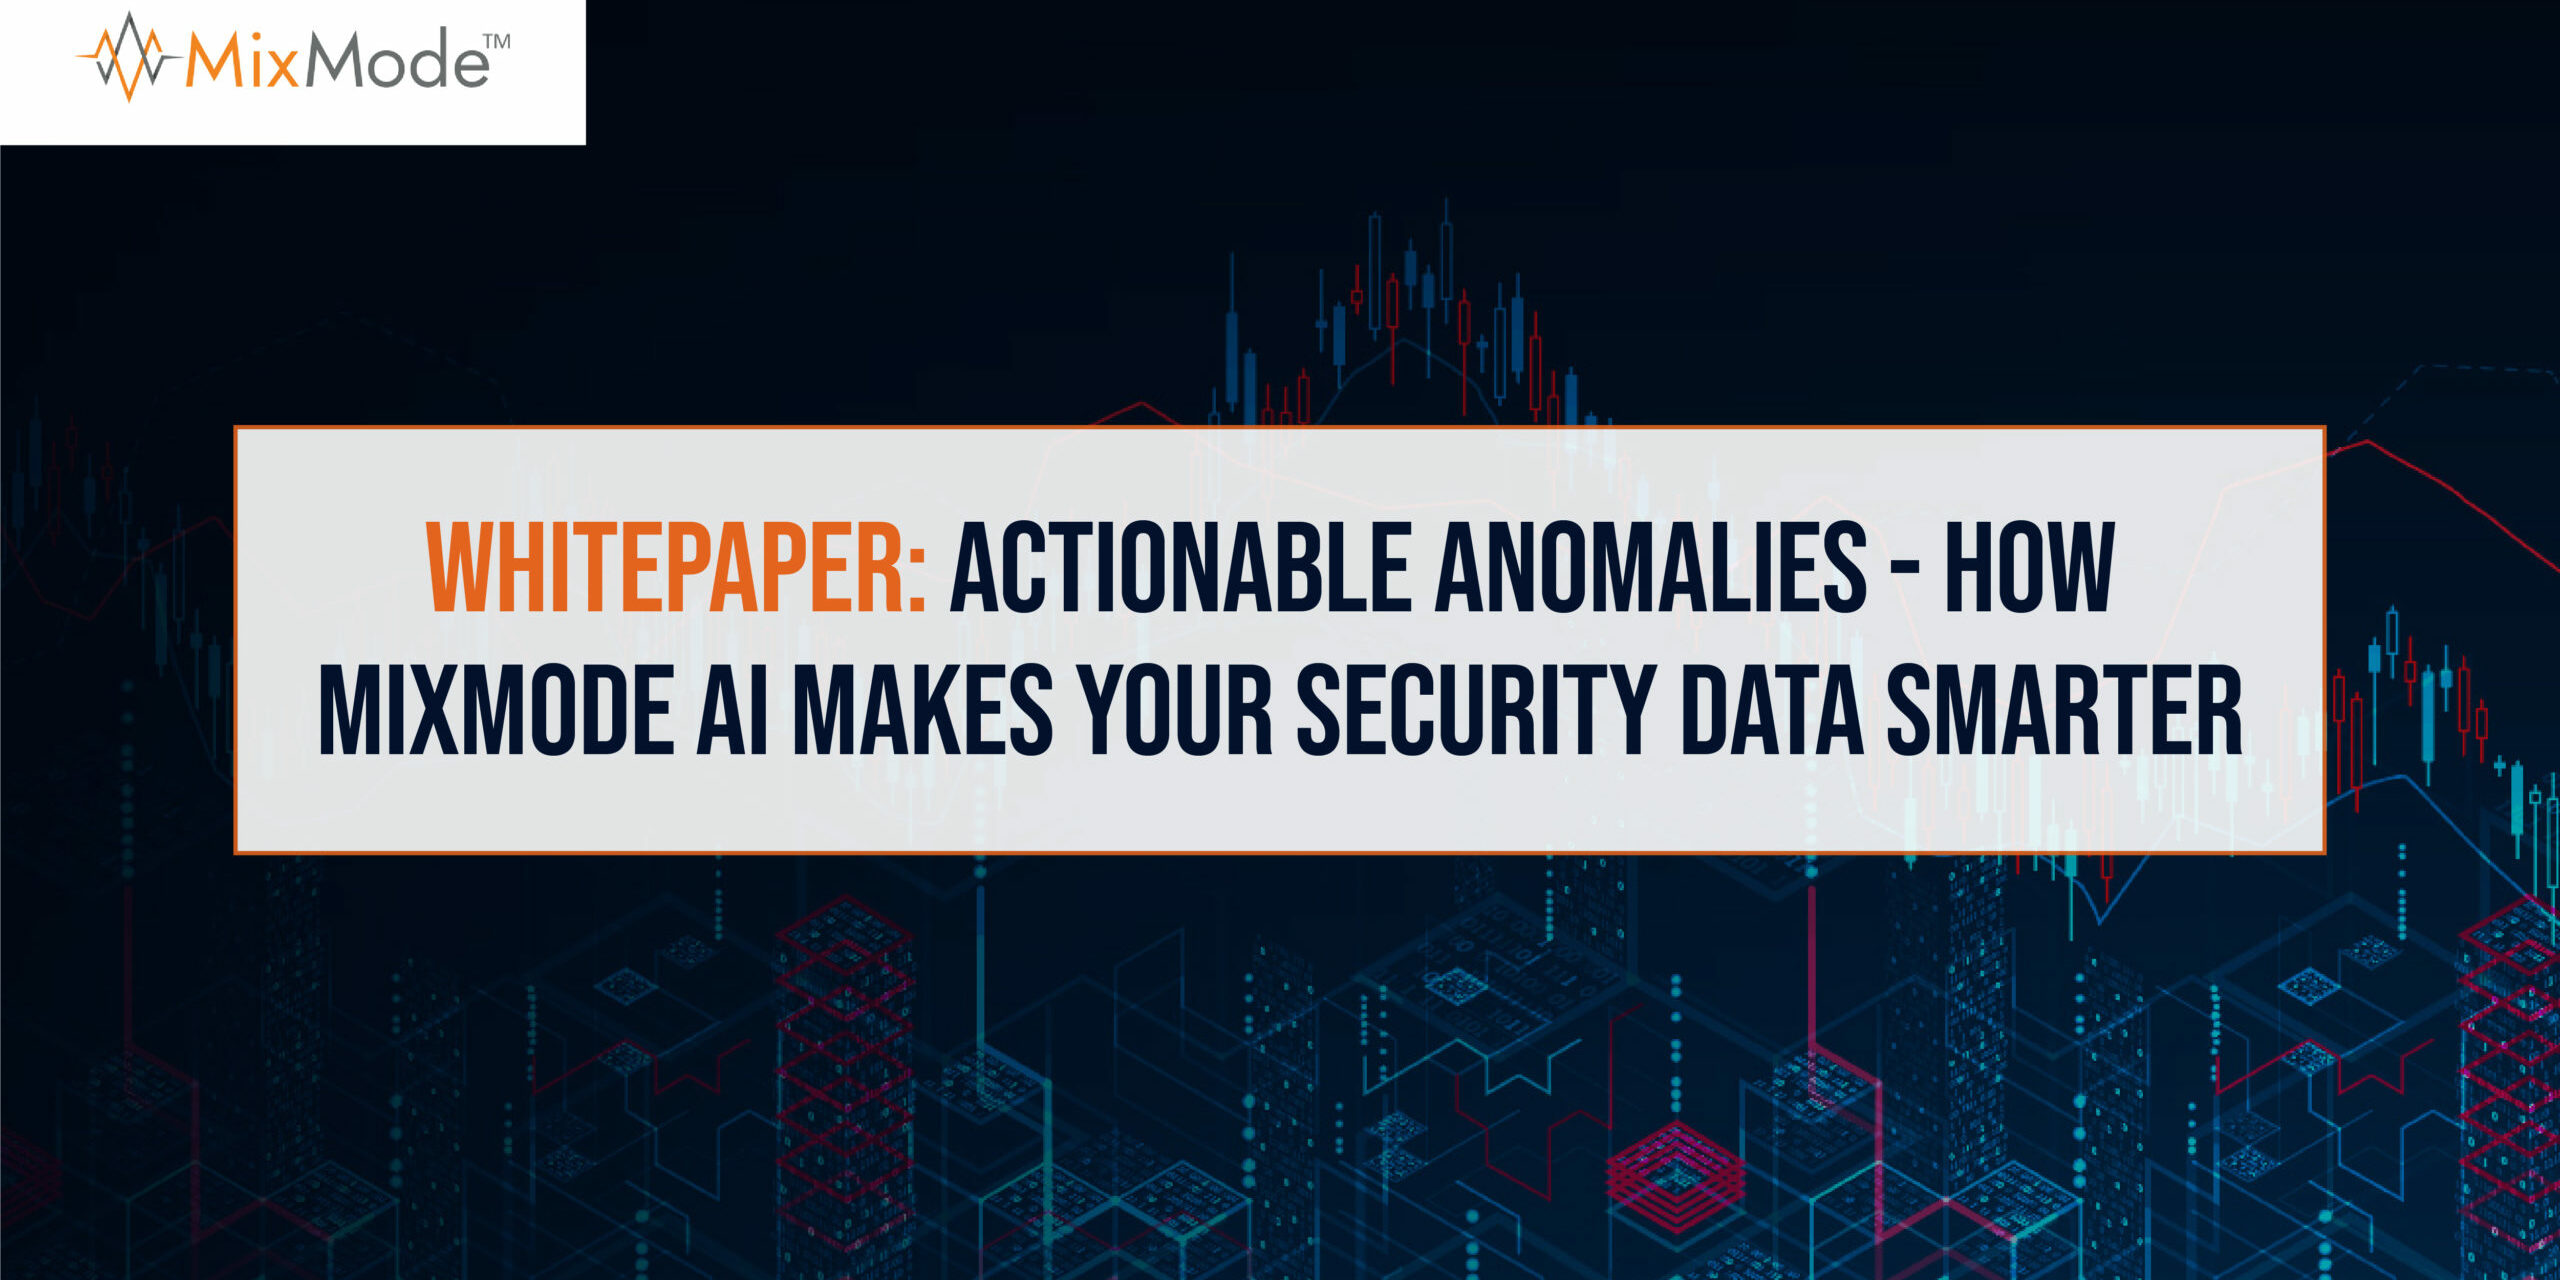 MixMode - Whitepaper-Actionable Anomalies-How MixMode AI Makes Your Security Data Smarter-39